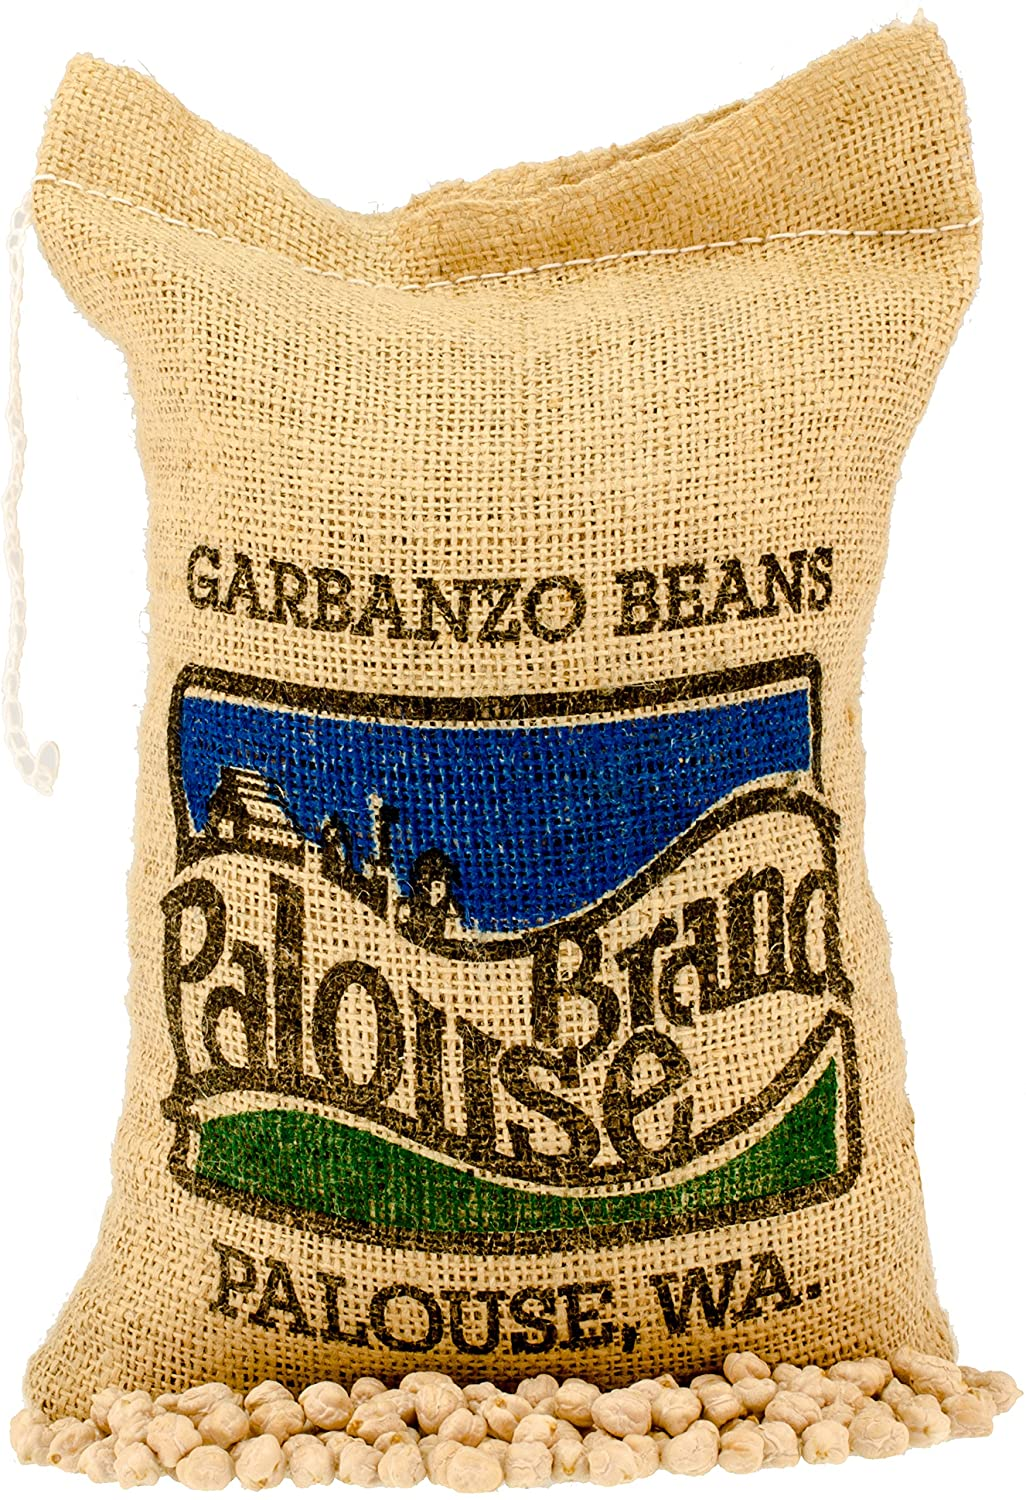 Garbanzo Beans aka Chickpeas or Ceci Beans | 5 LBS | Non-GMO Project Verified | 100% Non-Irradiated | Certified Kosher Parve | USA Grown | Field Traced